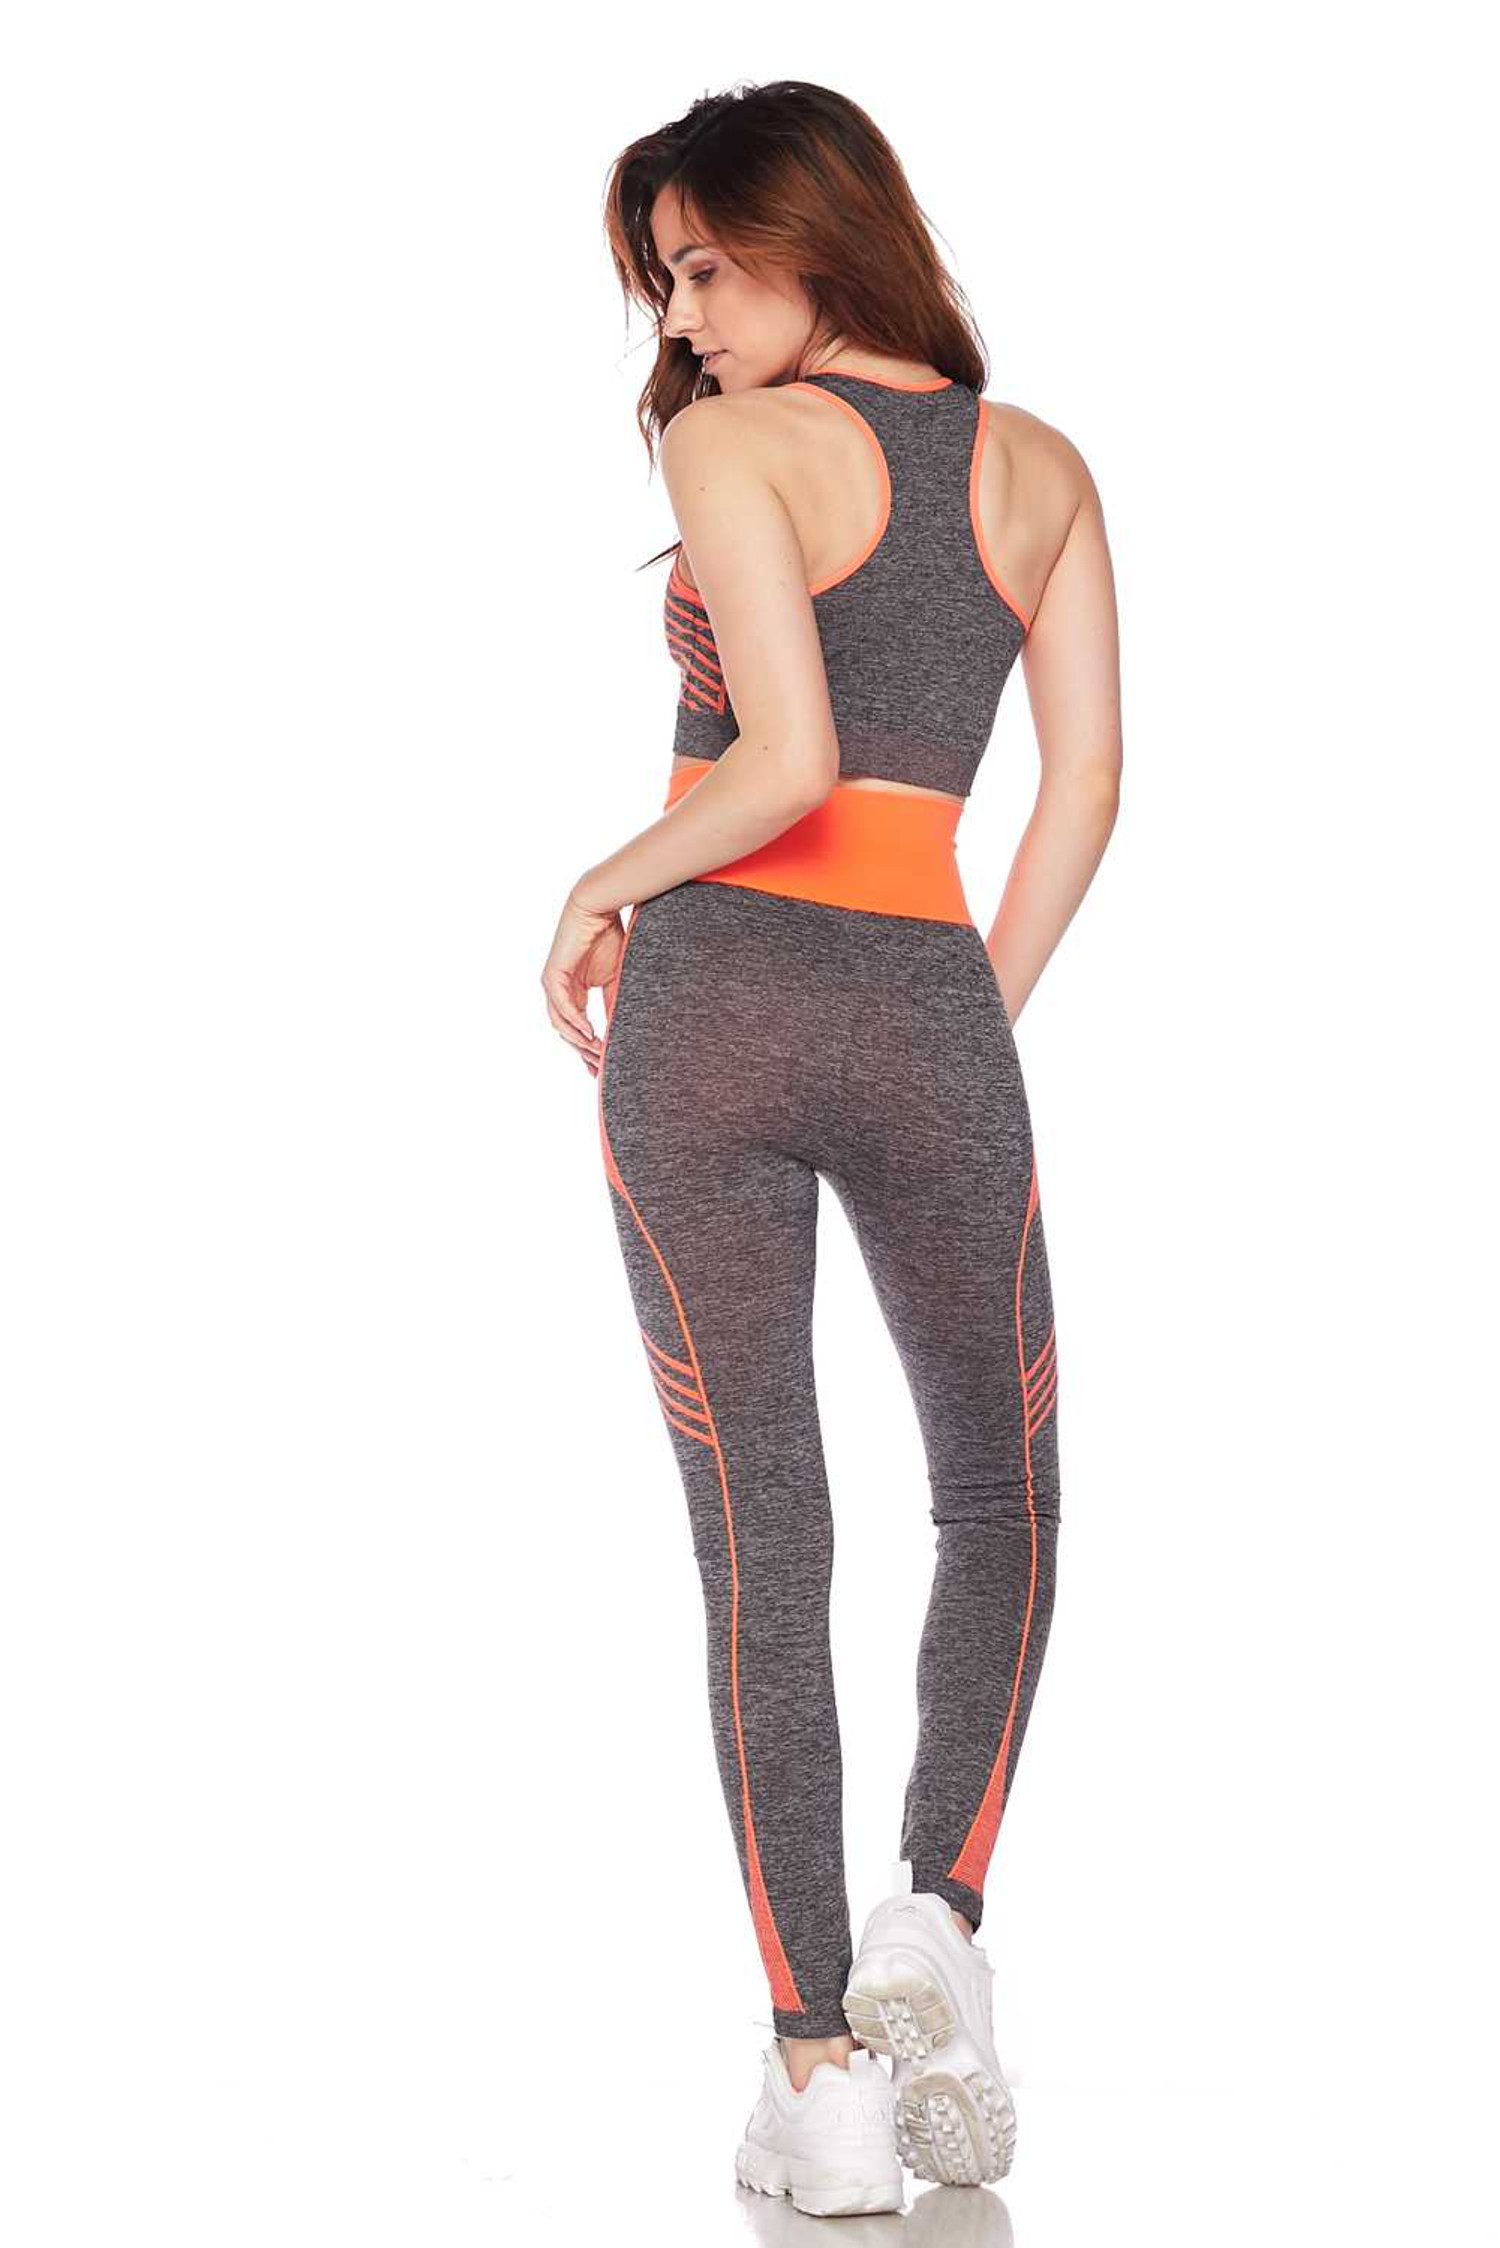 Racerback Tank Top and Leggings Activewear Set